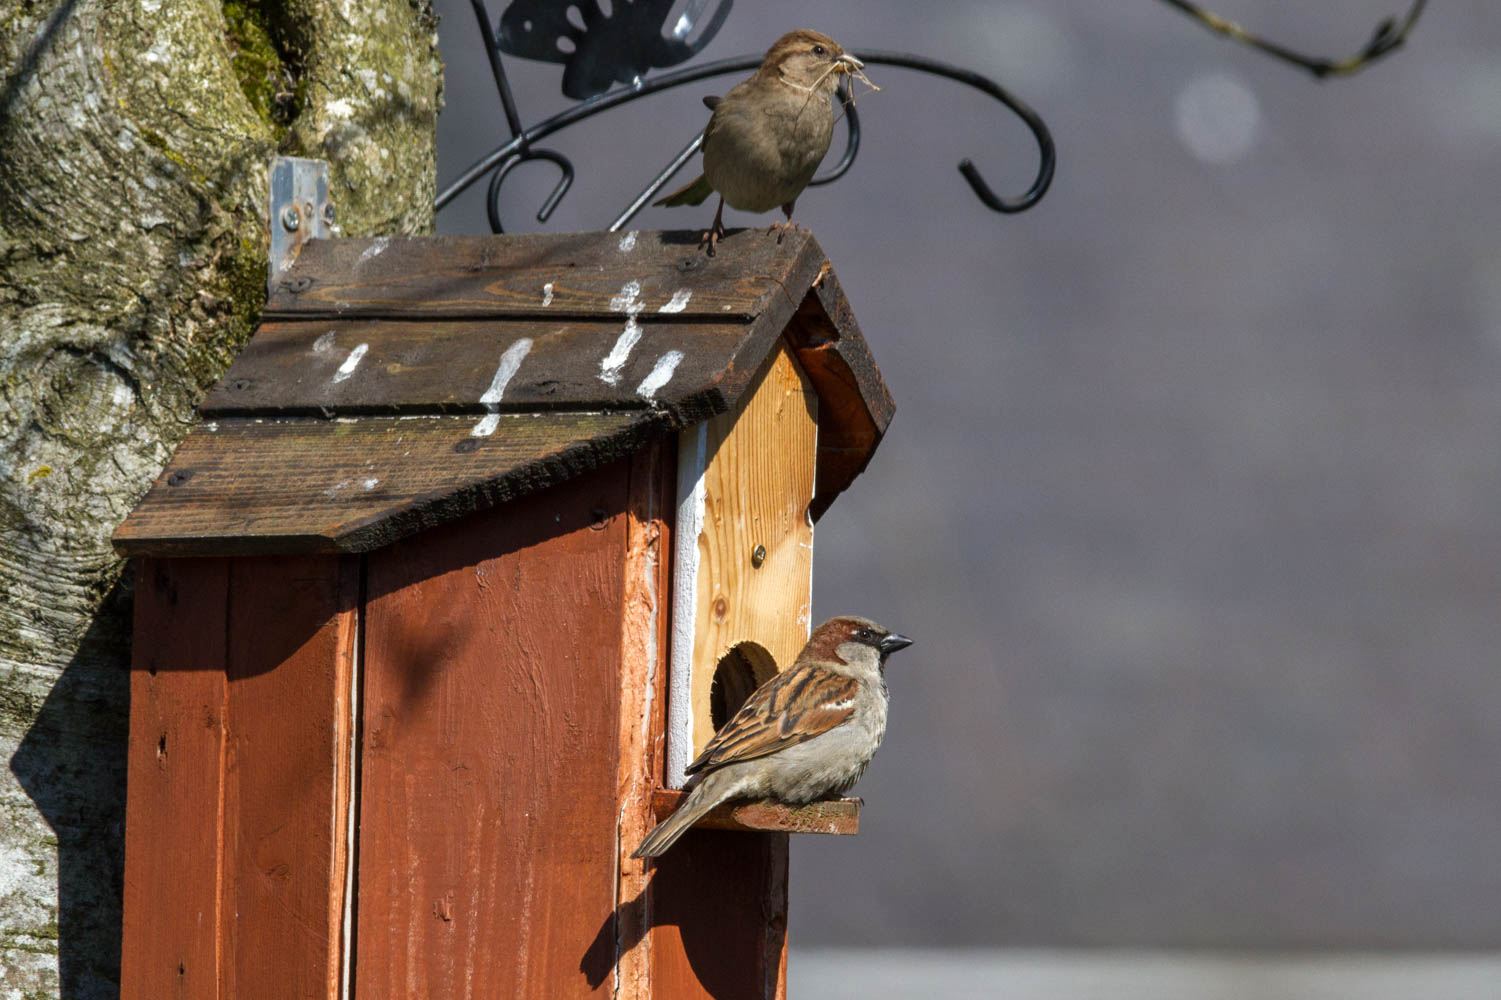 My neighbour has provided a desirable residence for the sparrows